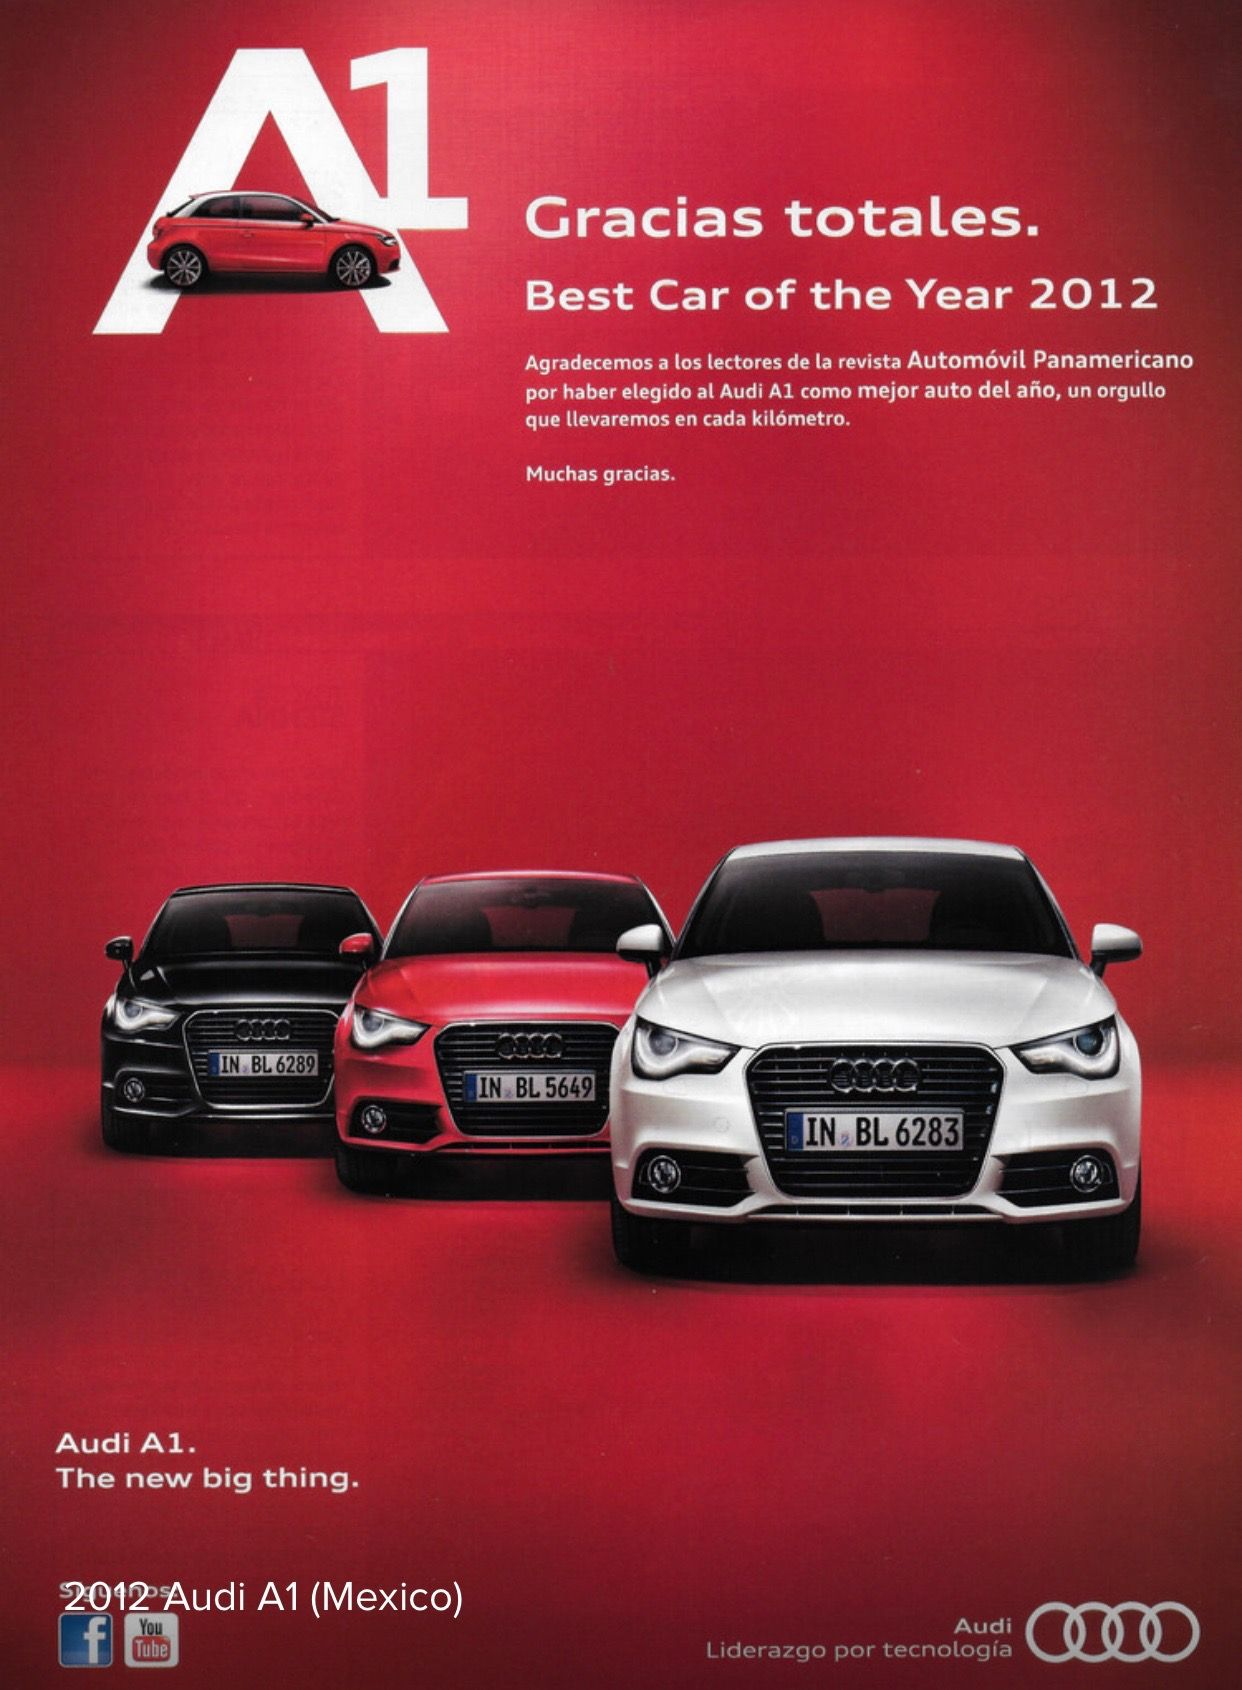 2012 Audi A1 Mexico By Michael On Flickr Automotive Advertising